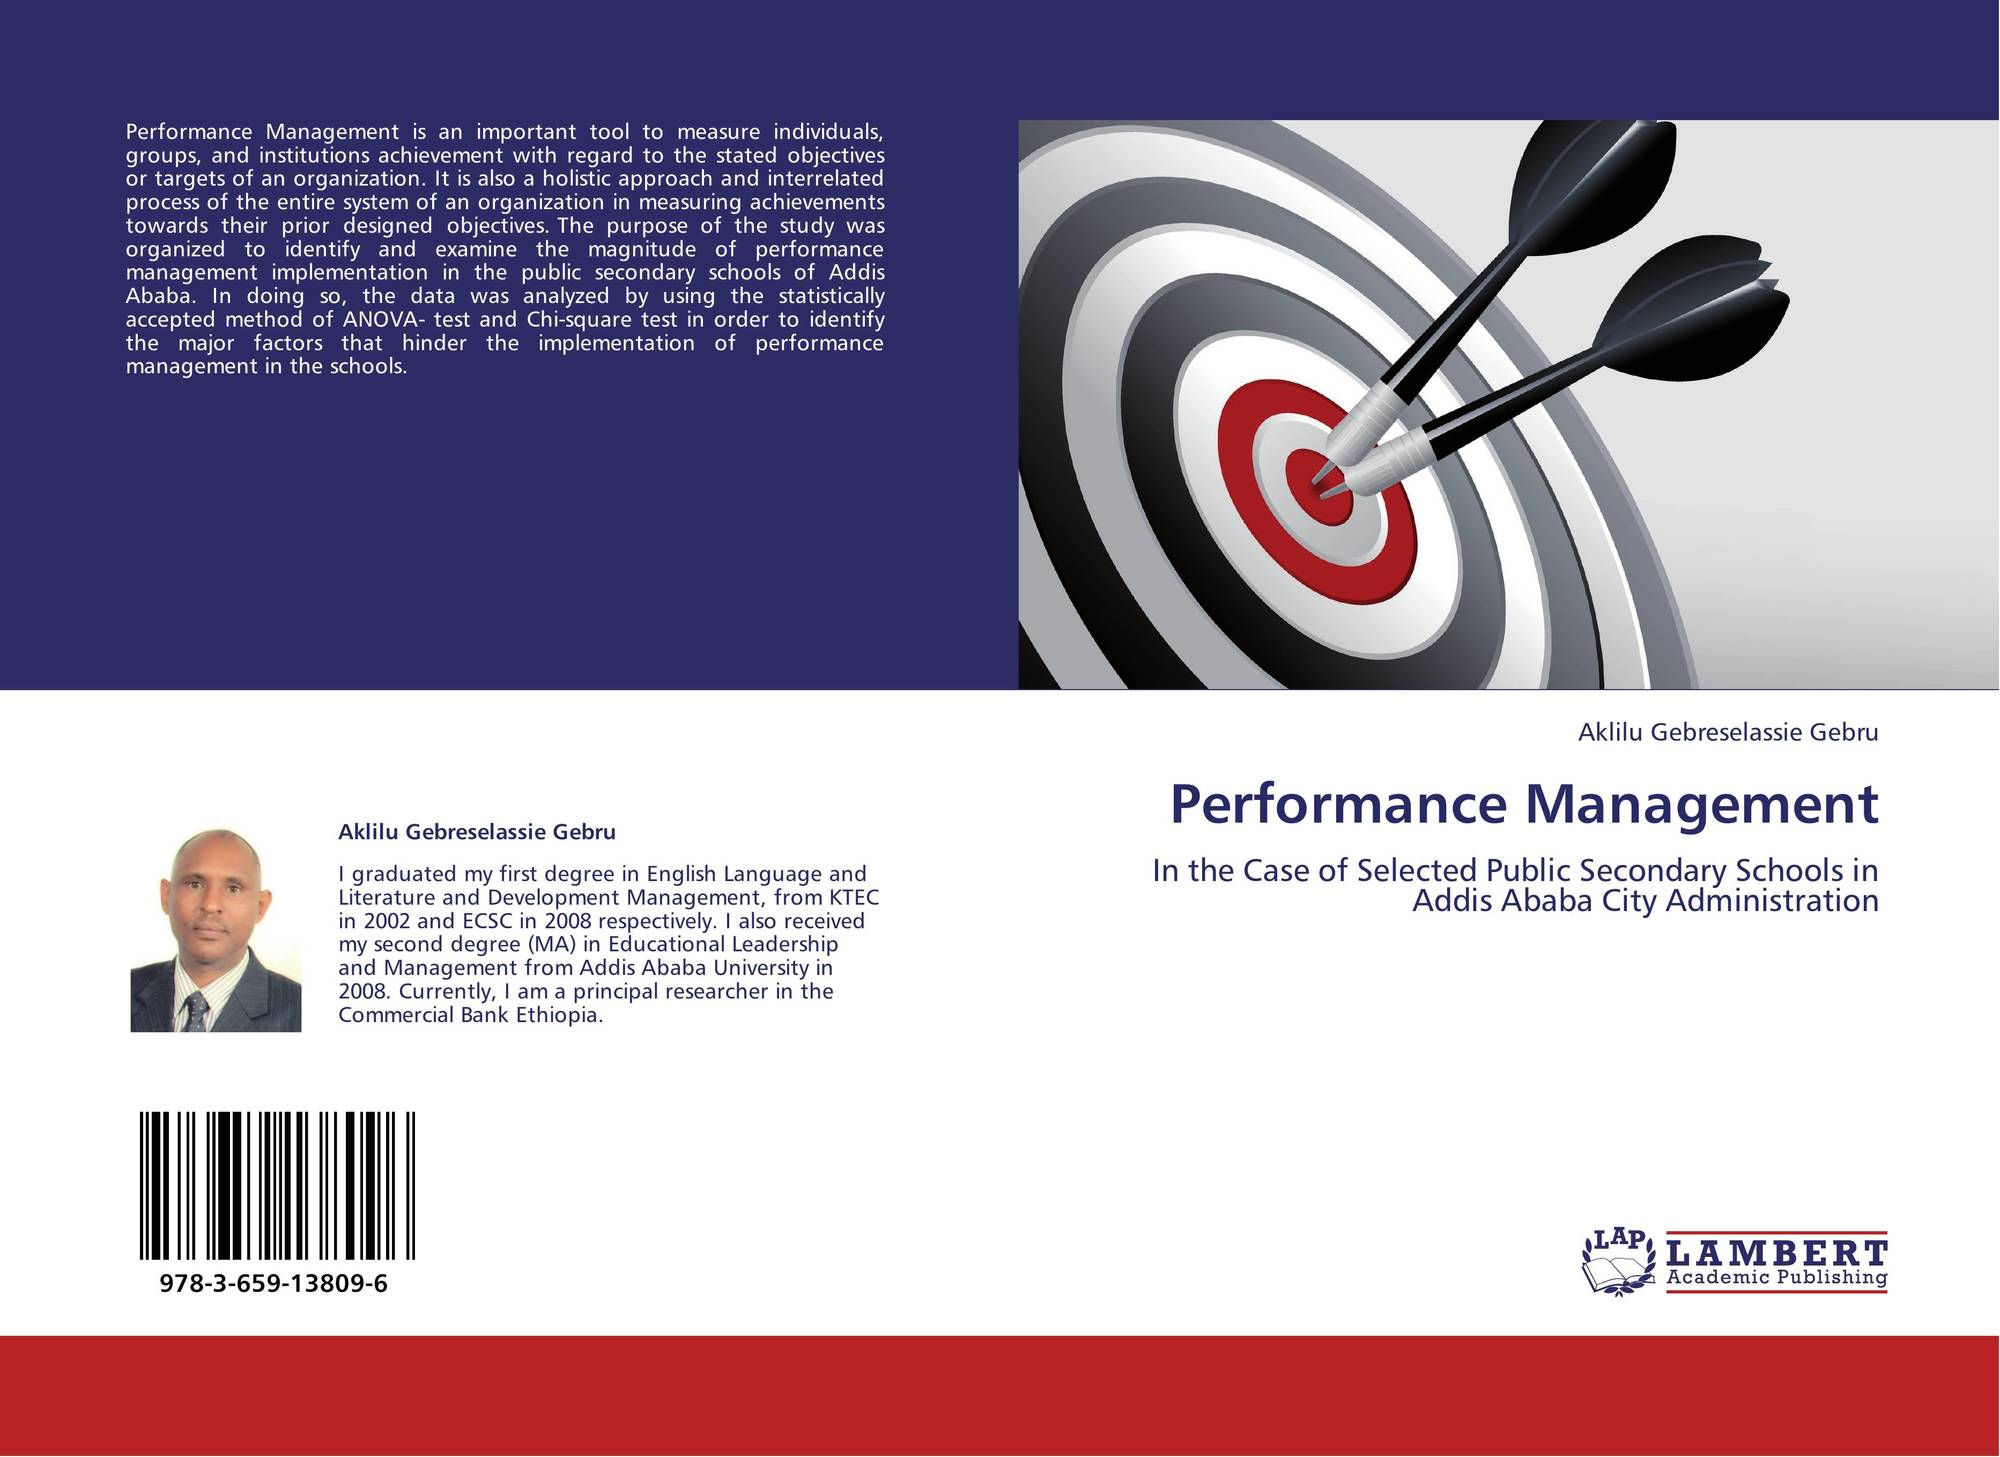 performance management and the law Law firm key performance indicators a primer law firms of all sizes measure various behaviours and indicators of firm health and performance these indicators are important sources of information for the management of the firm and its staff.